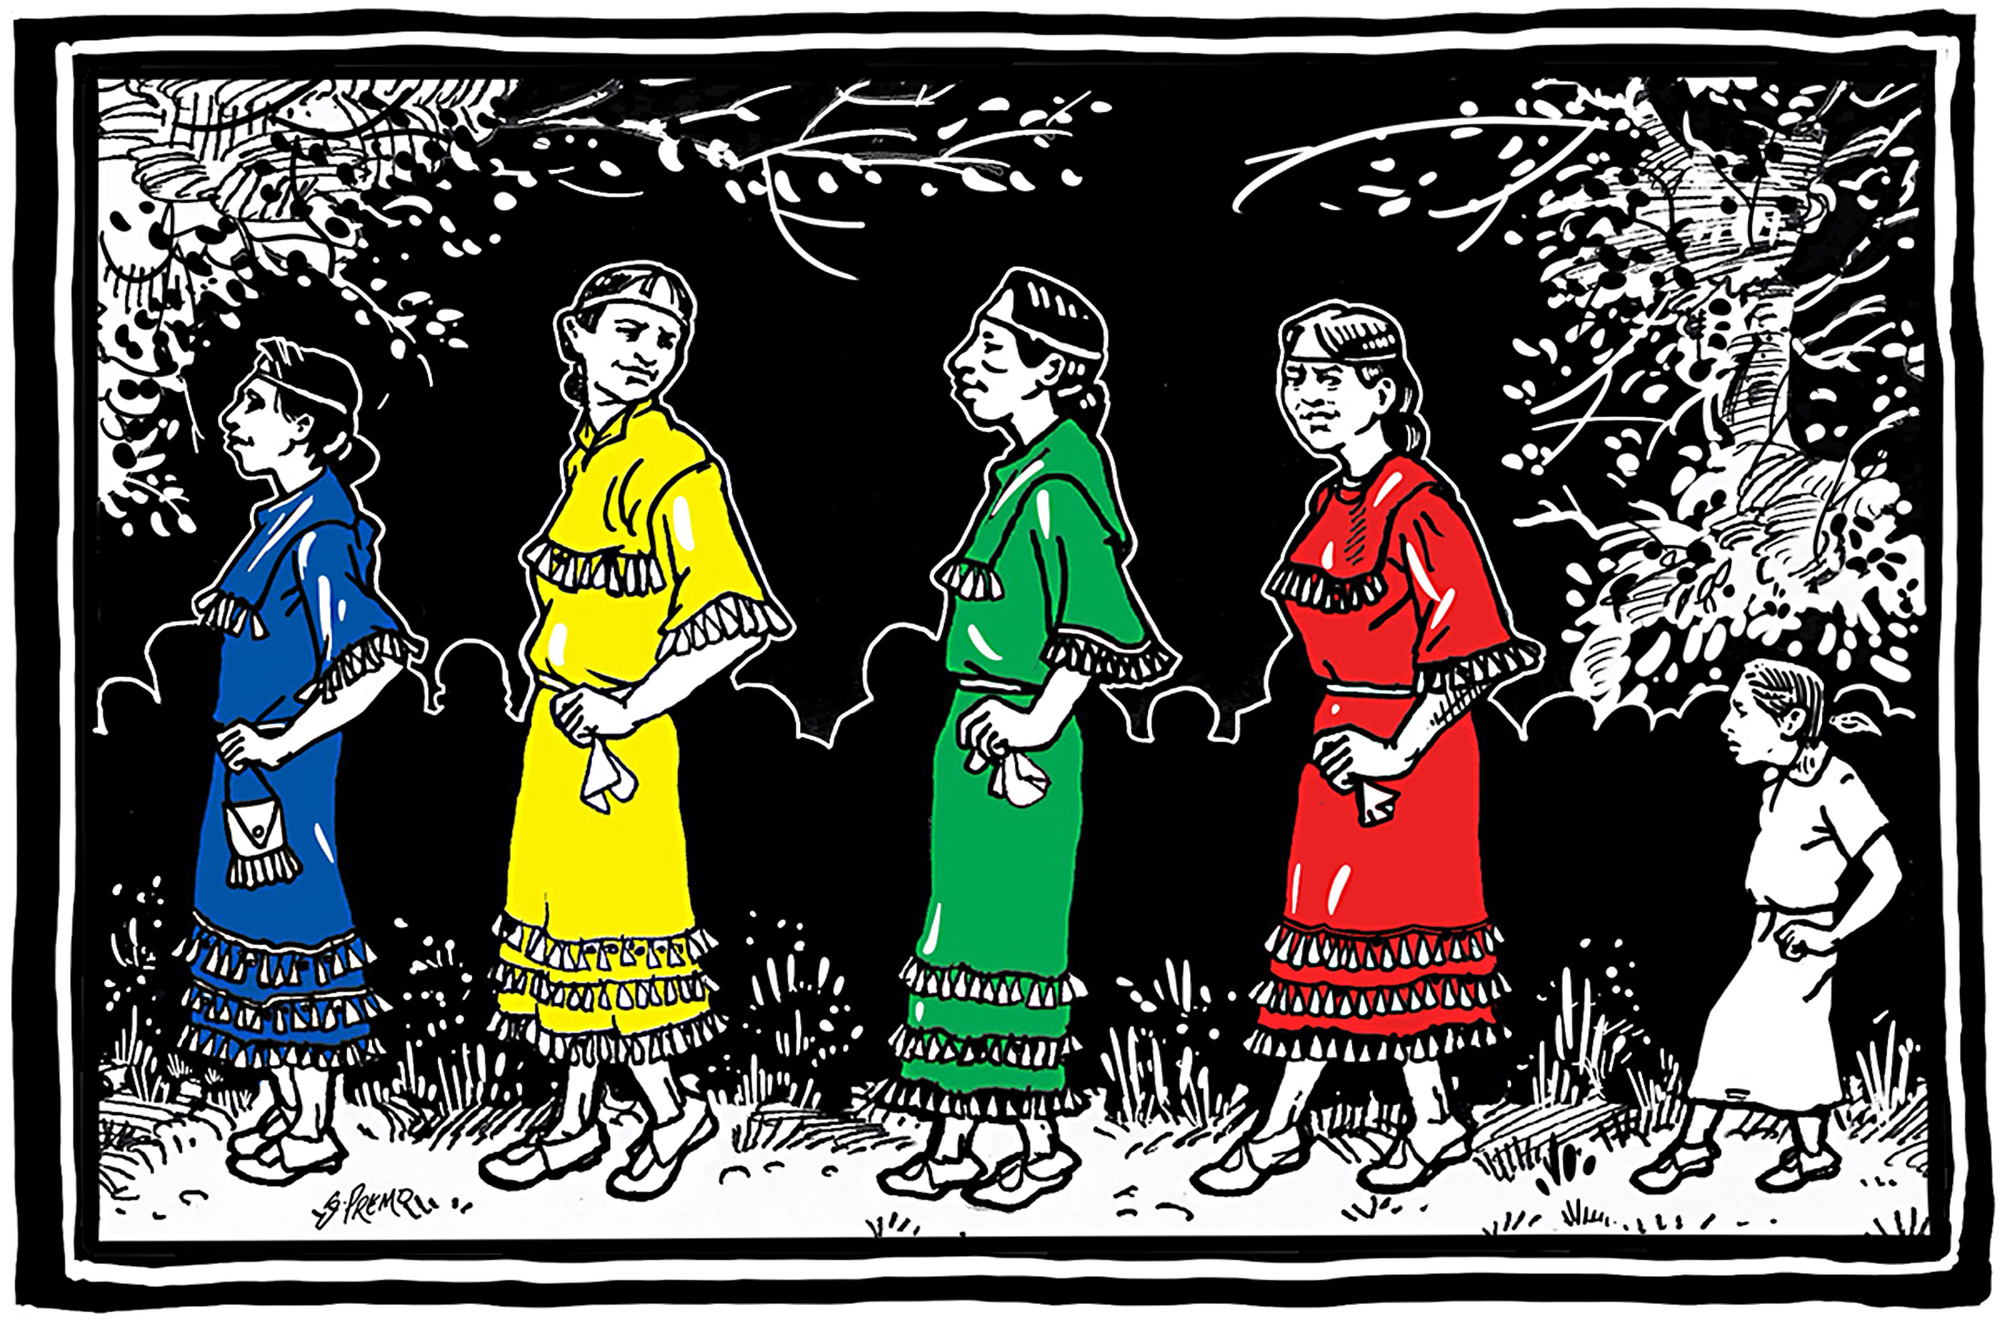 An illustration depicts the origin of the Jingle Dress Dance Tradition, which emerged from the vision of a father whose daughter had fallen ill and appeared to be near death, but recovered her health.